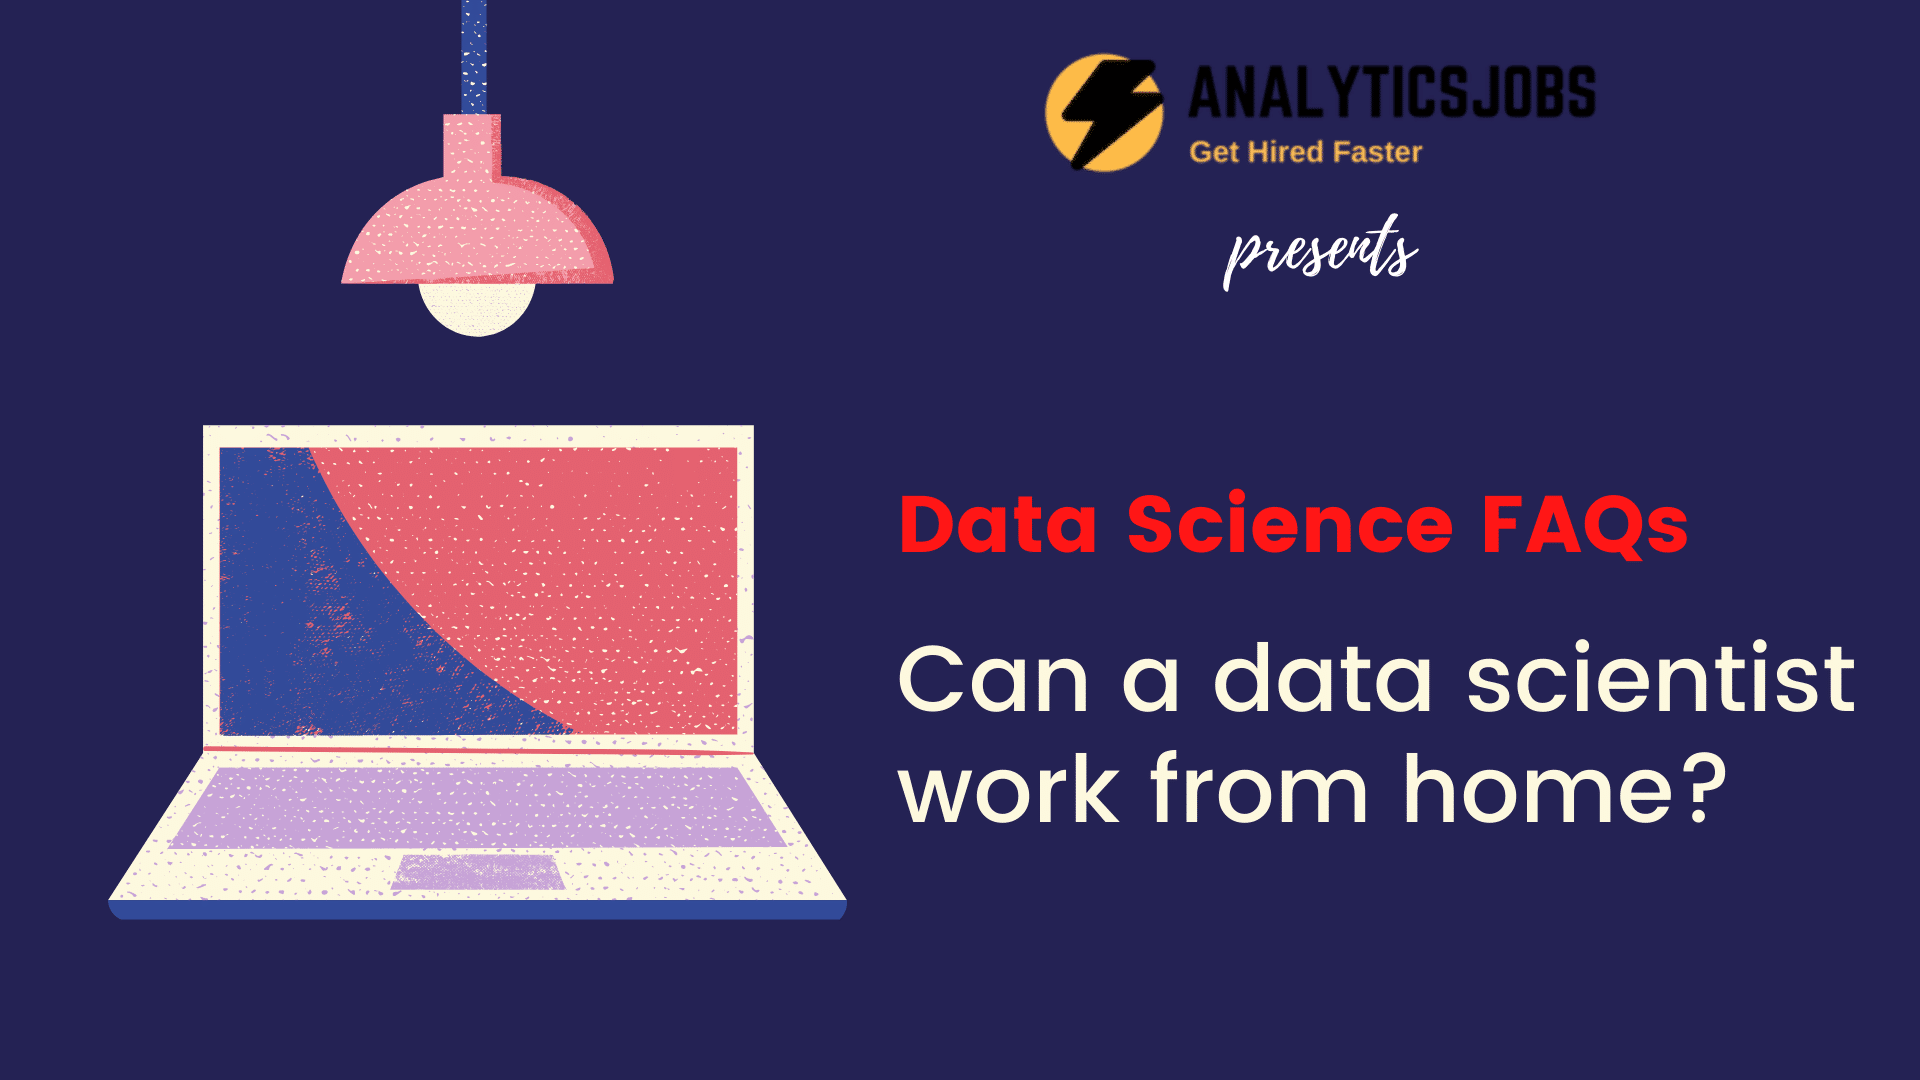 Can a data scientist work from home?